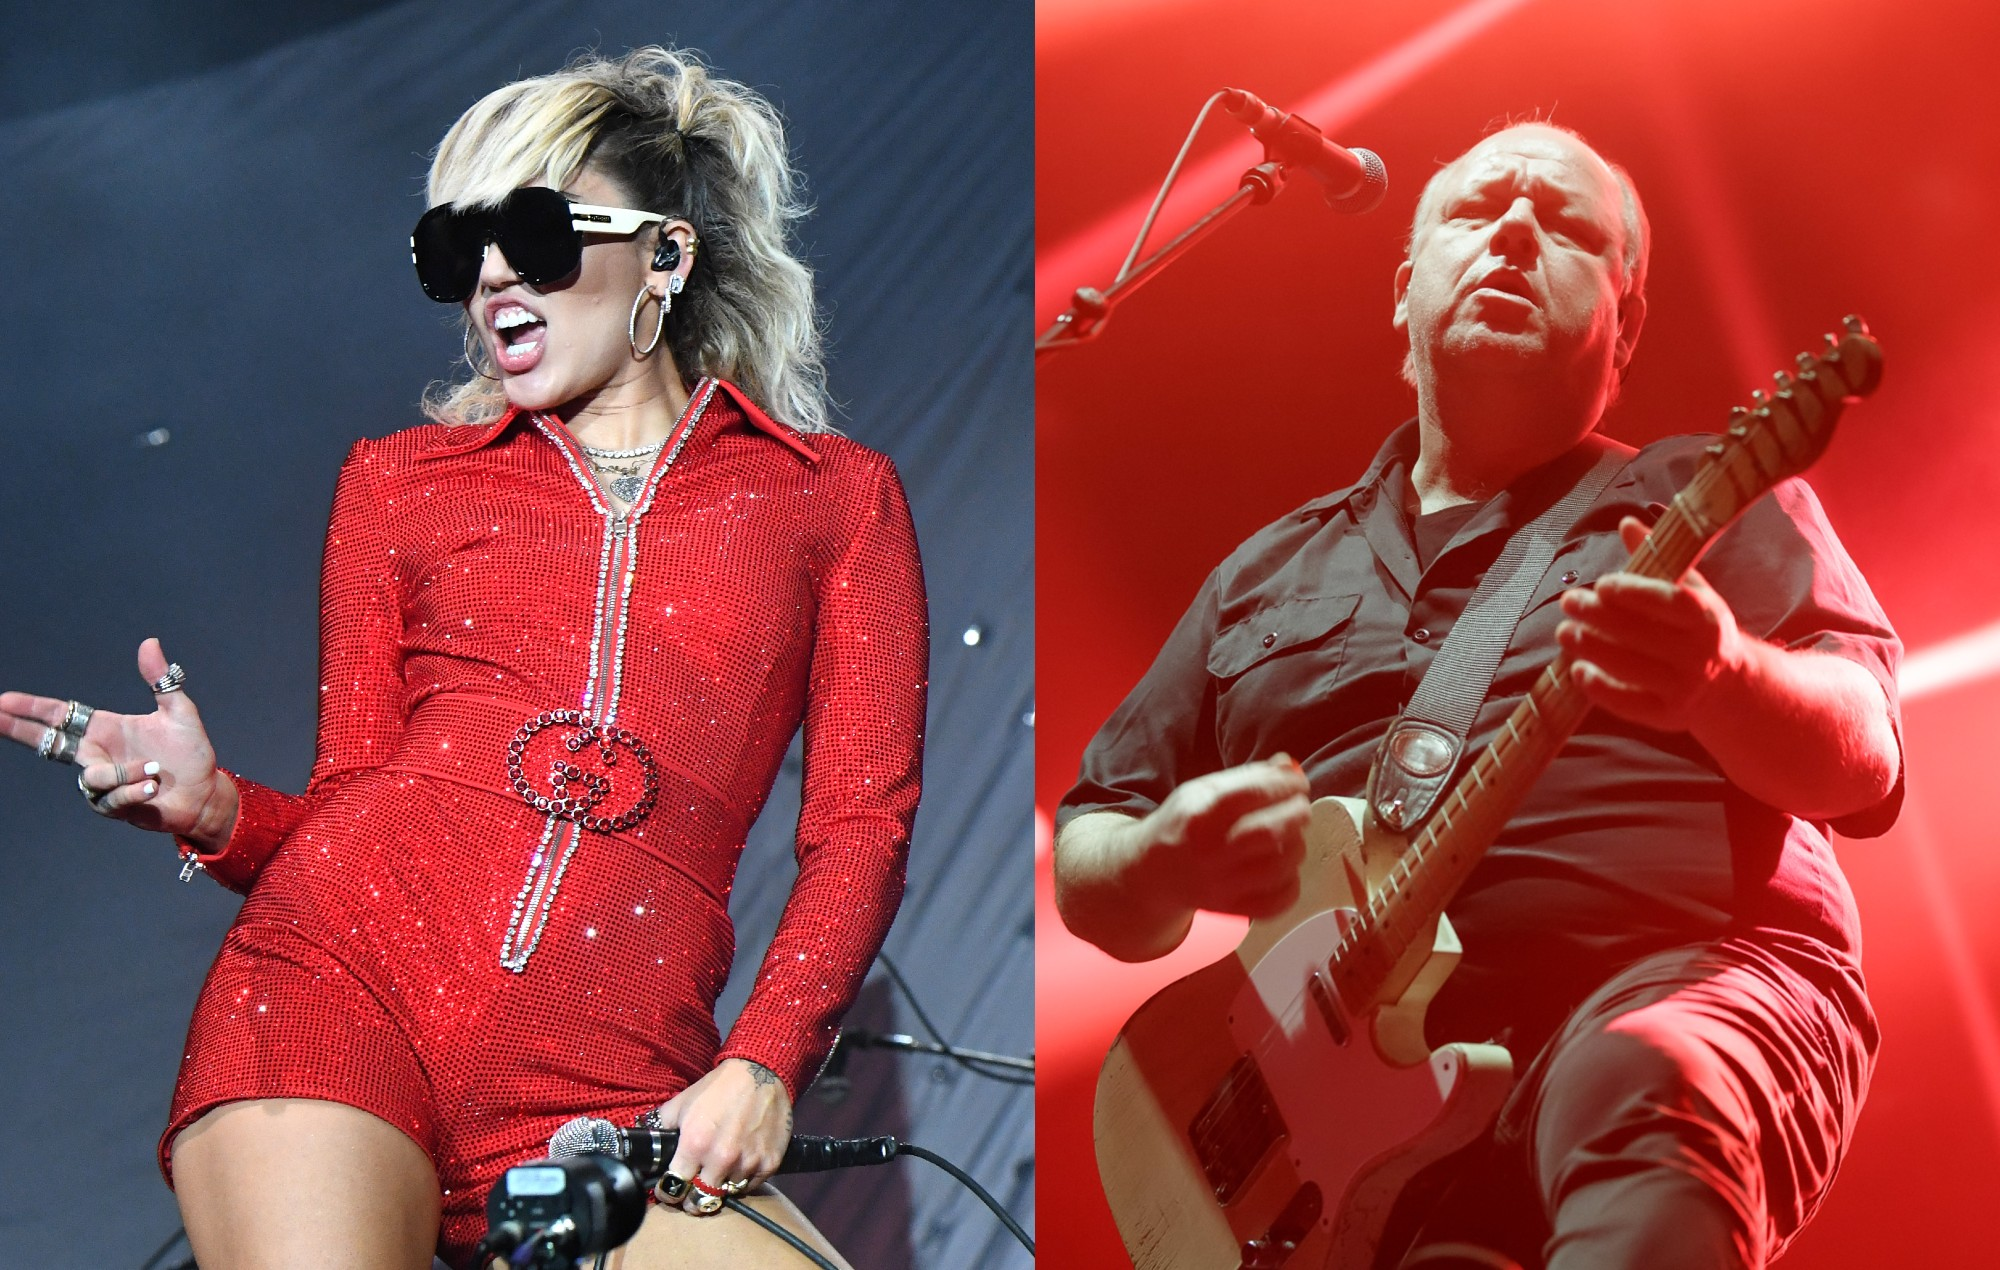 Miley Cyrus made a 'We Can't Stop' and the Pixies' 'Where Is My Mind?' medley for Lollapalooza - NME